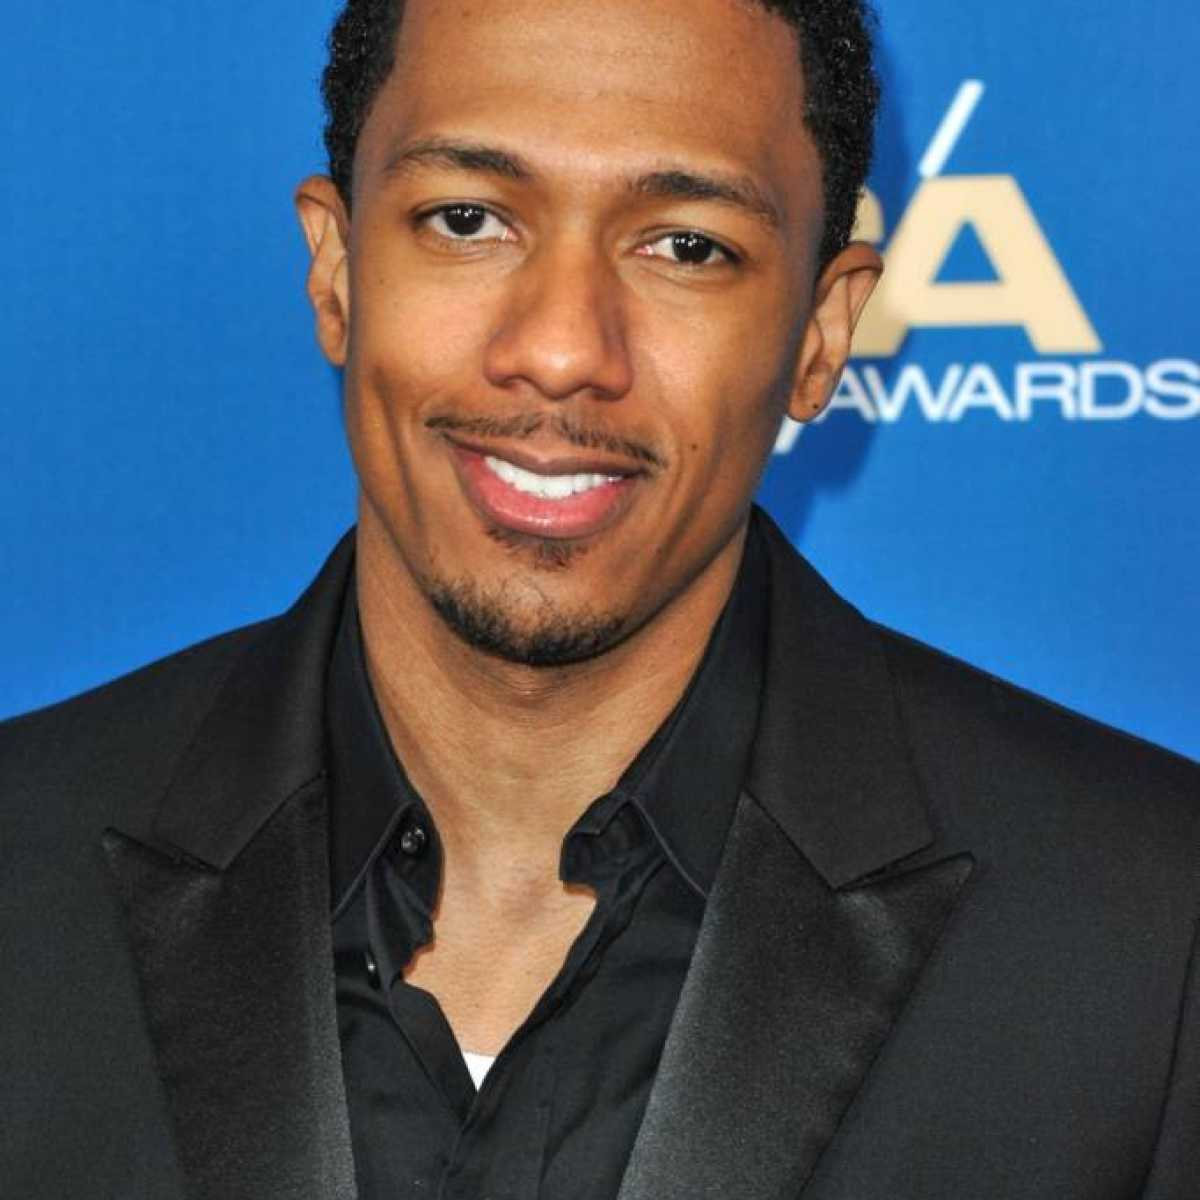 Nick Cannon Released From Hospital, Planning His Return To